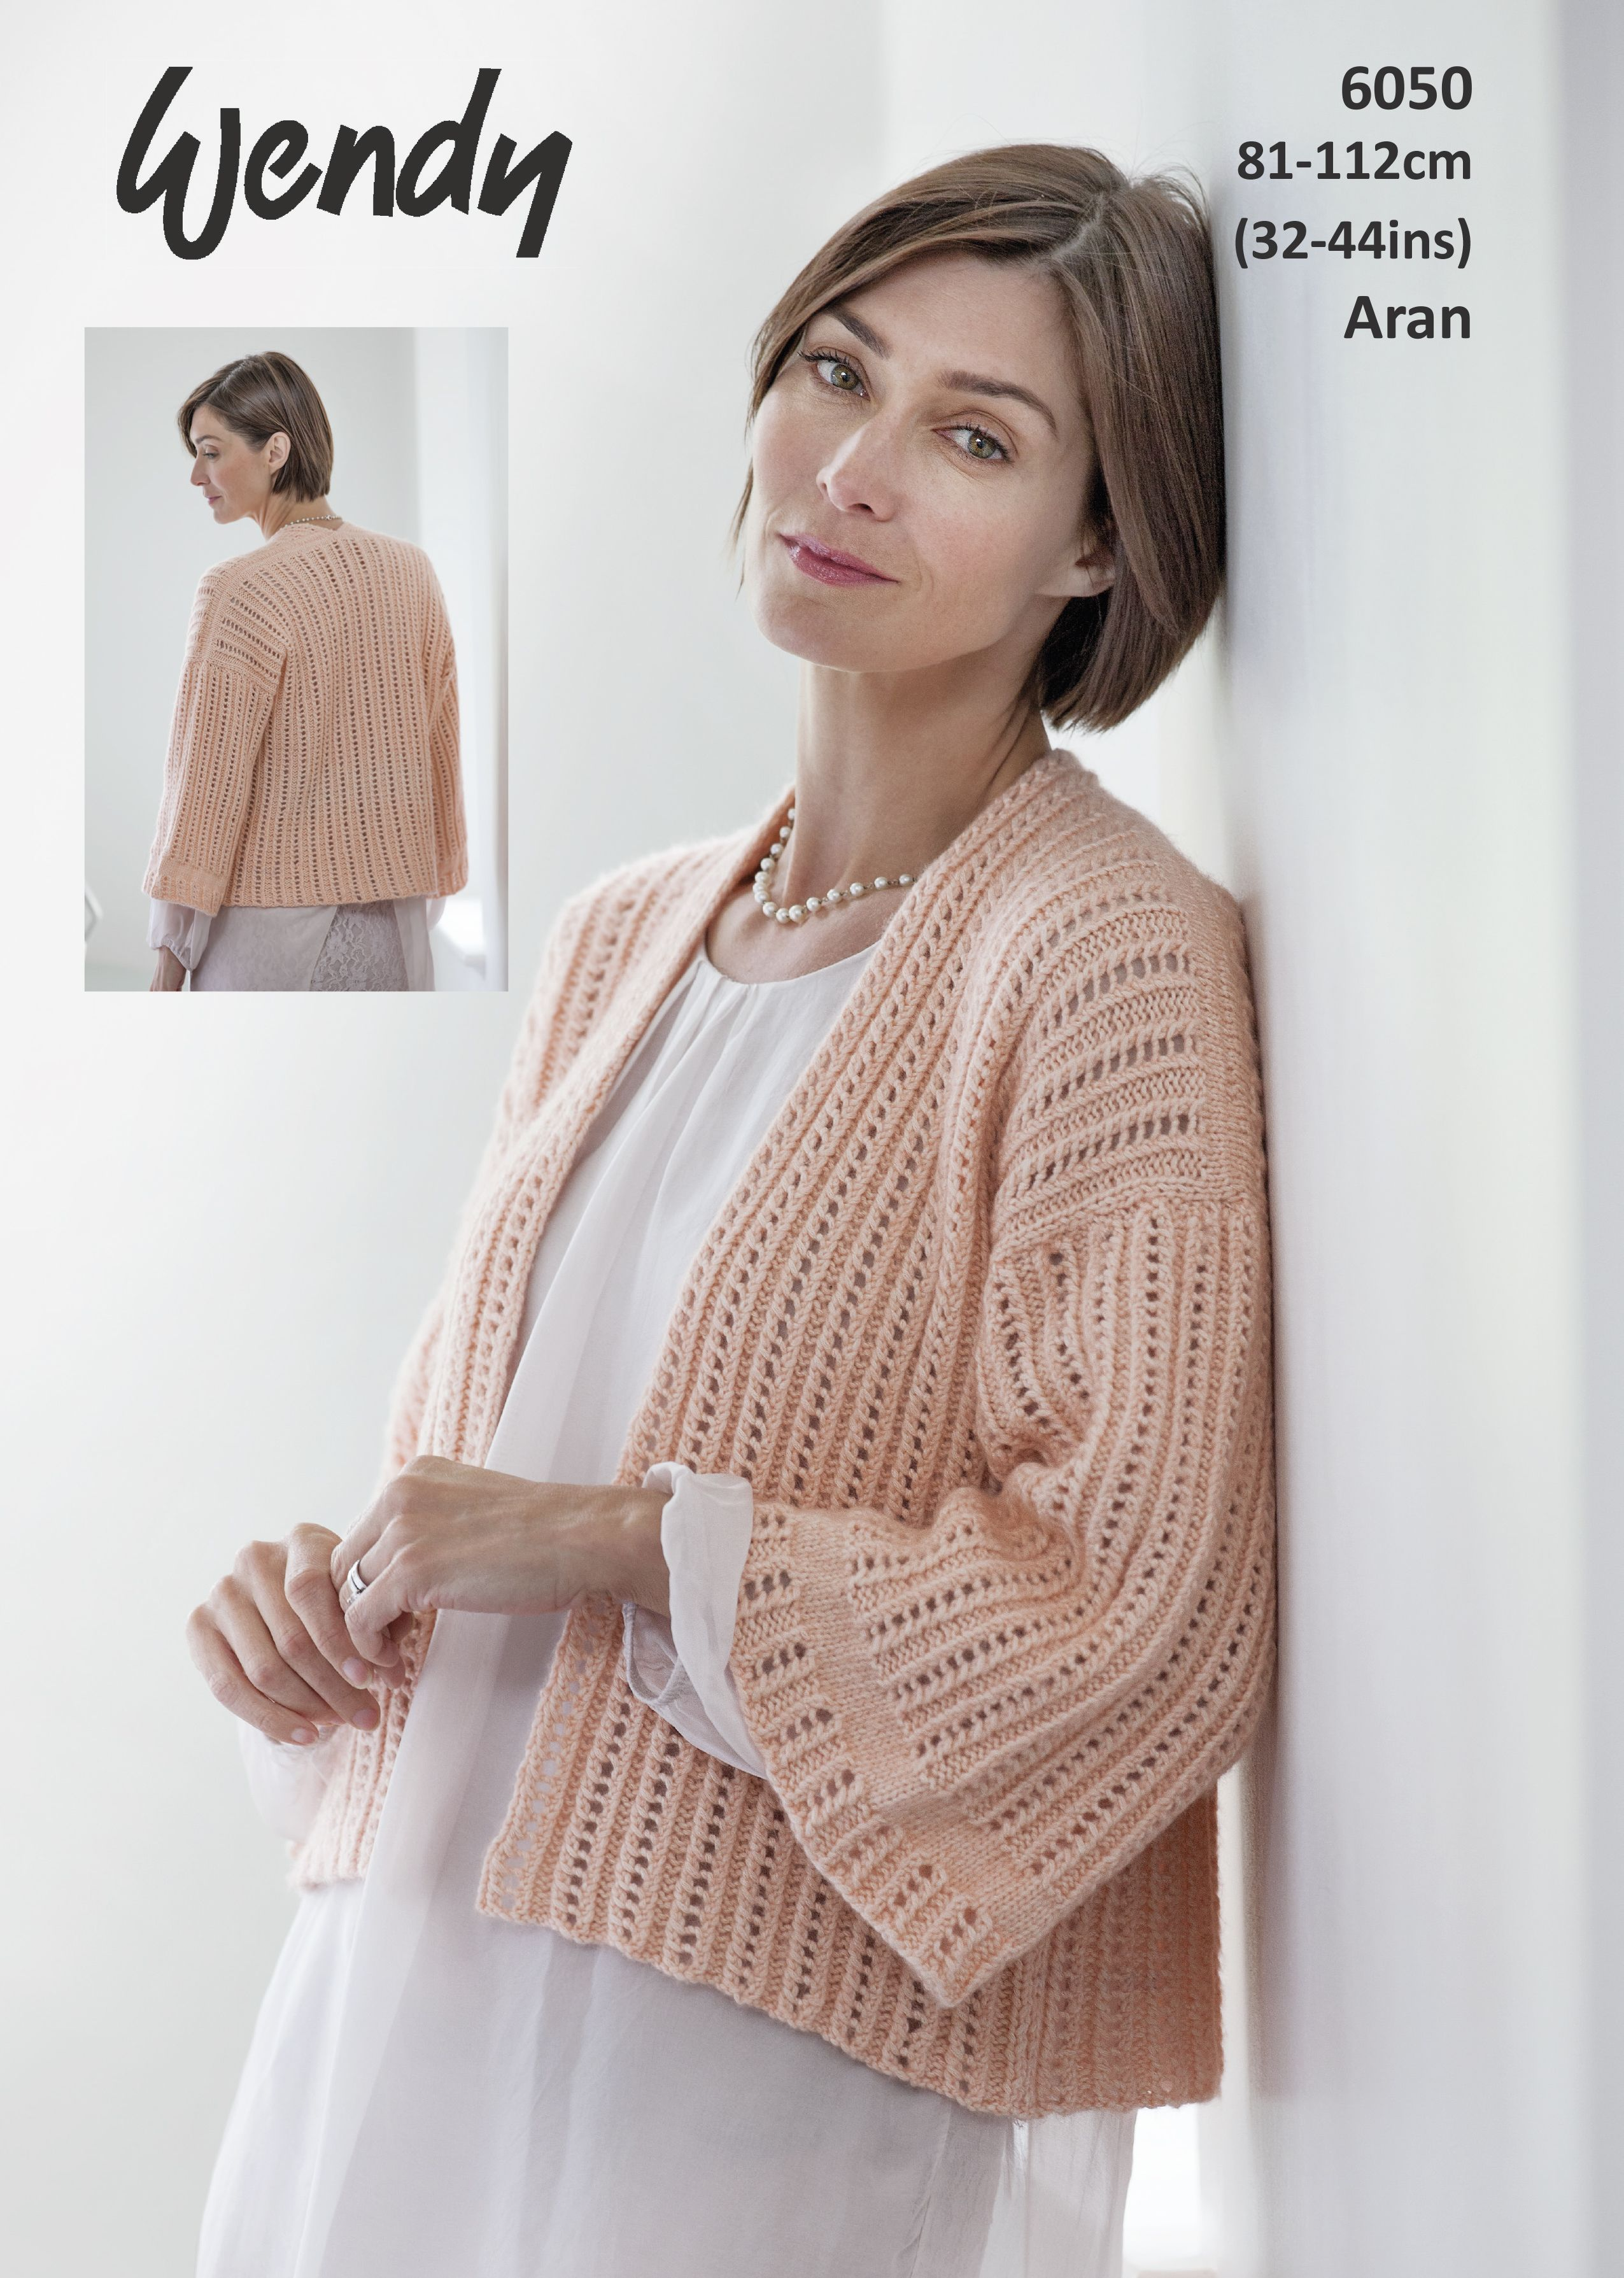 Cardigan knitted in wendy purity pattern no 6050 wendy purity cardigan knitted in wendy purity pattern no 6050 bankloansurffo Image collections